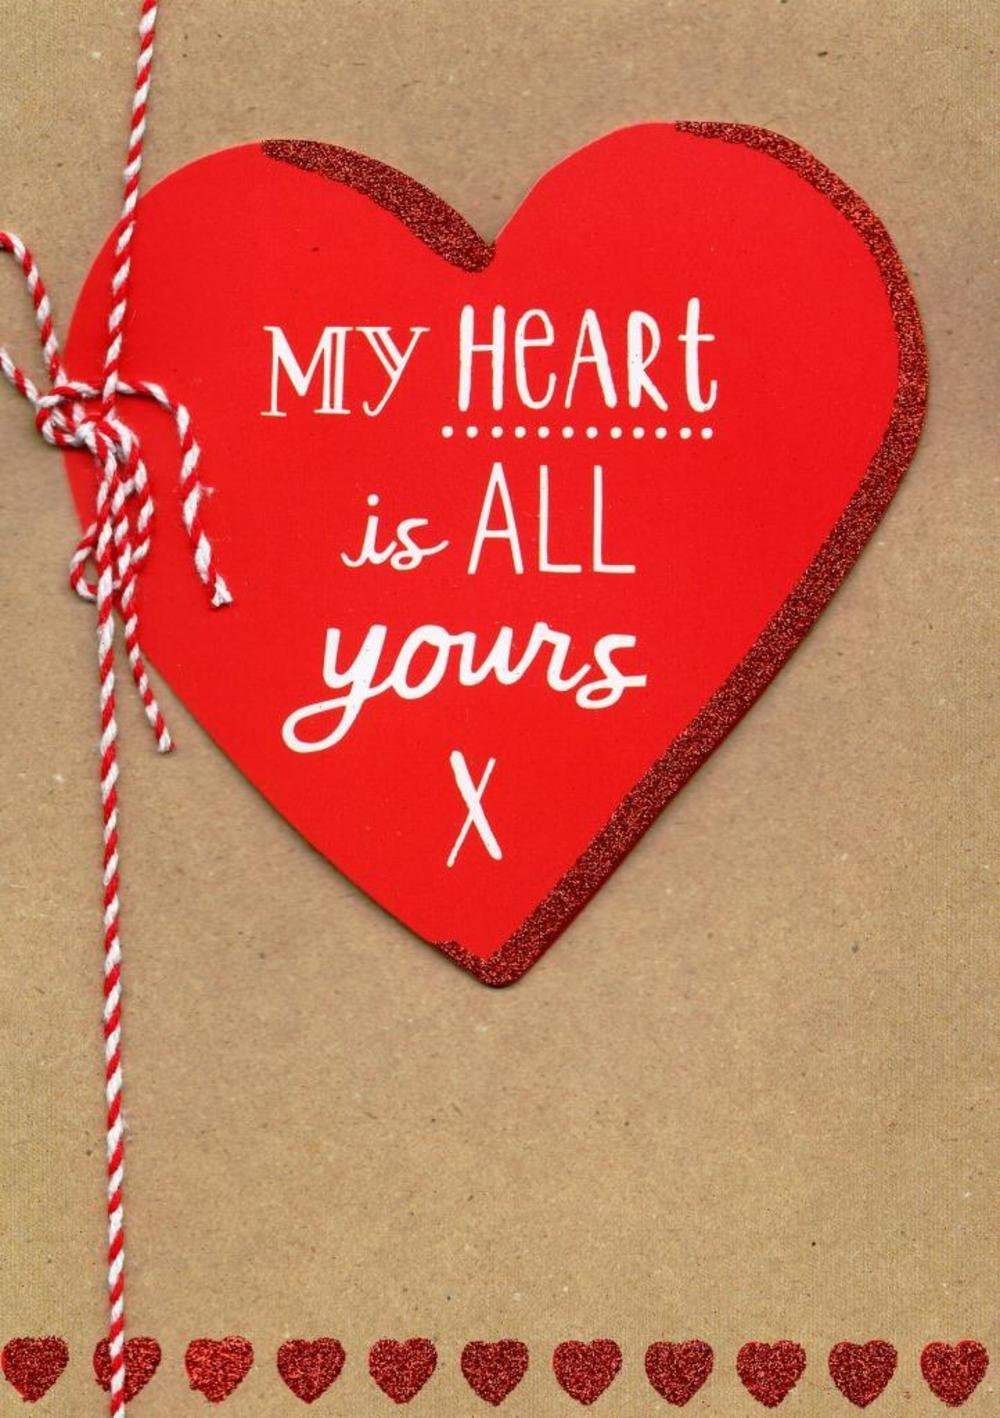 My Heart Is All Yours Valentine's Day Greeting Card